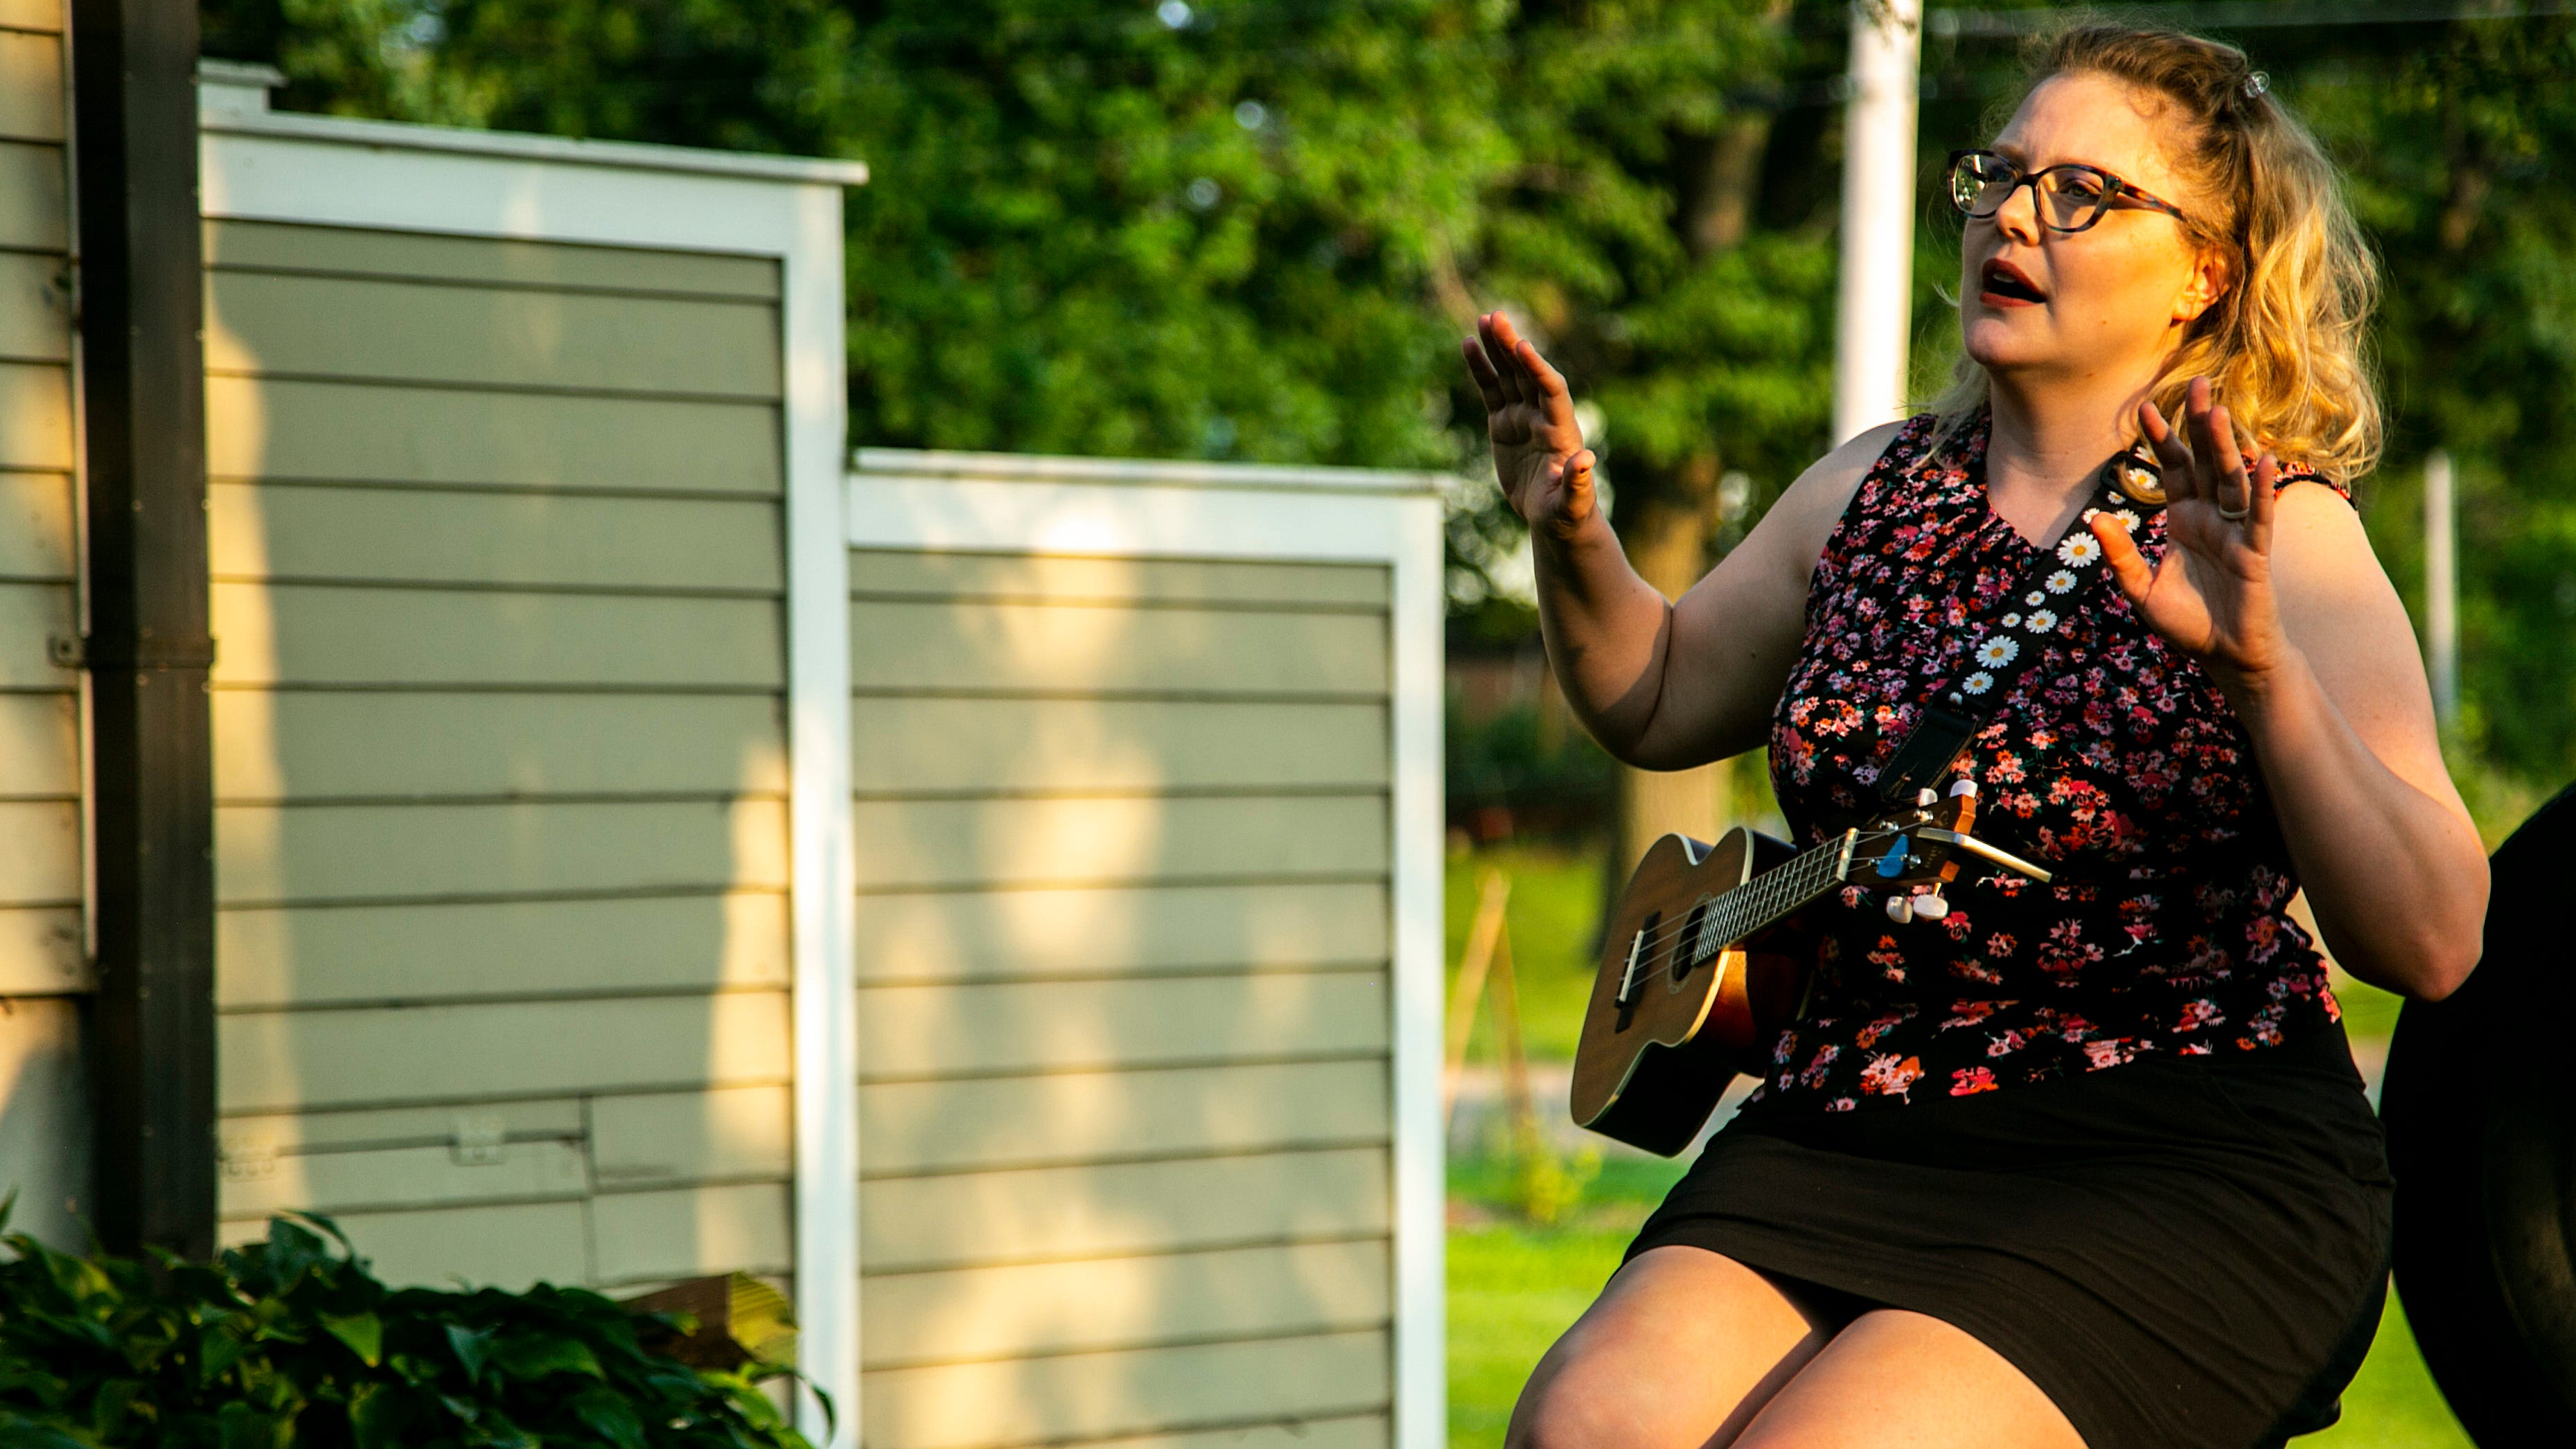 Comedian Megan Gogerty performs COVID-inspired play in Iowa City homes